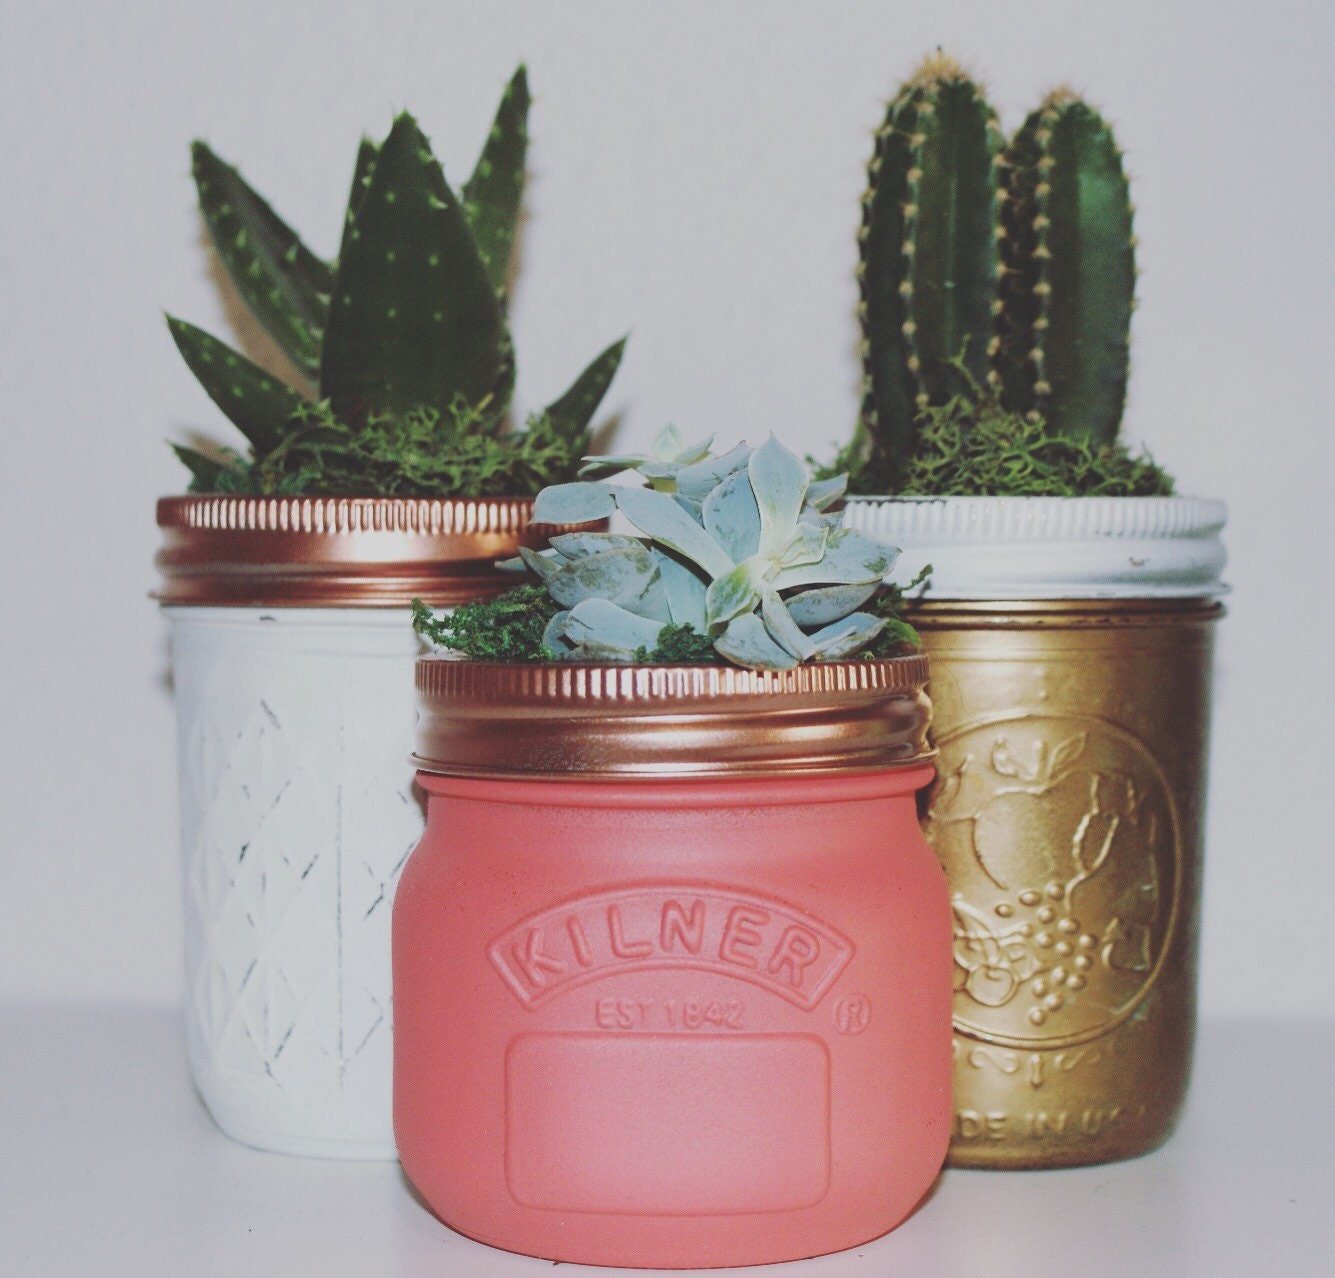 Succulent Jar Beautifully Hand Painted Ball Mason Jars Home Decor Cactus Unusual Gift Ideas Mothers Day Unique